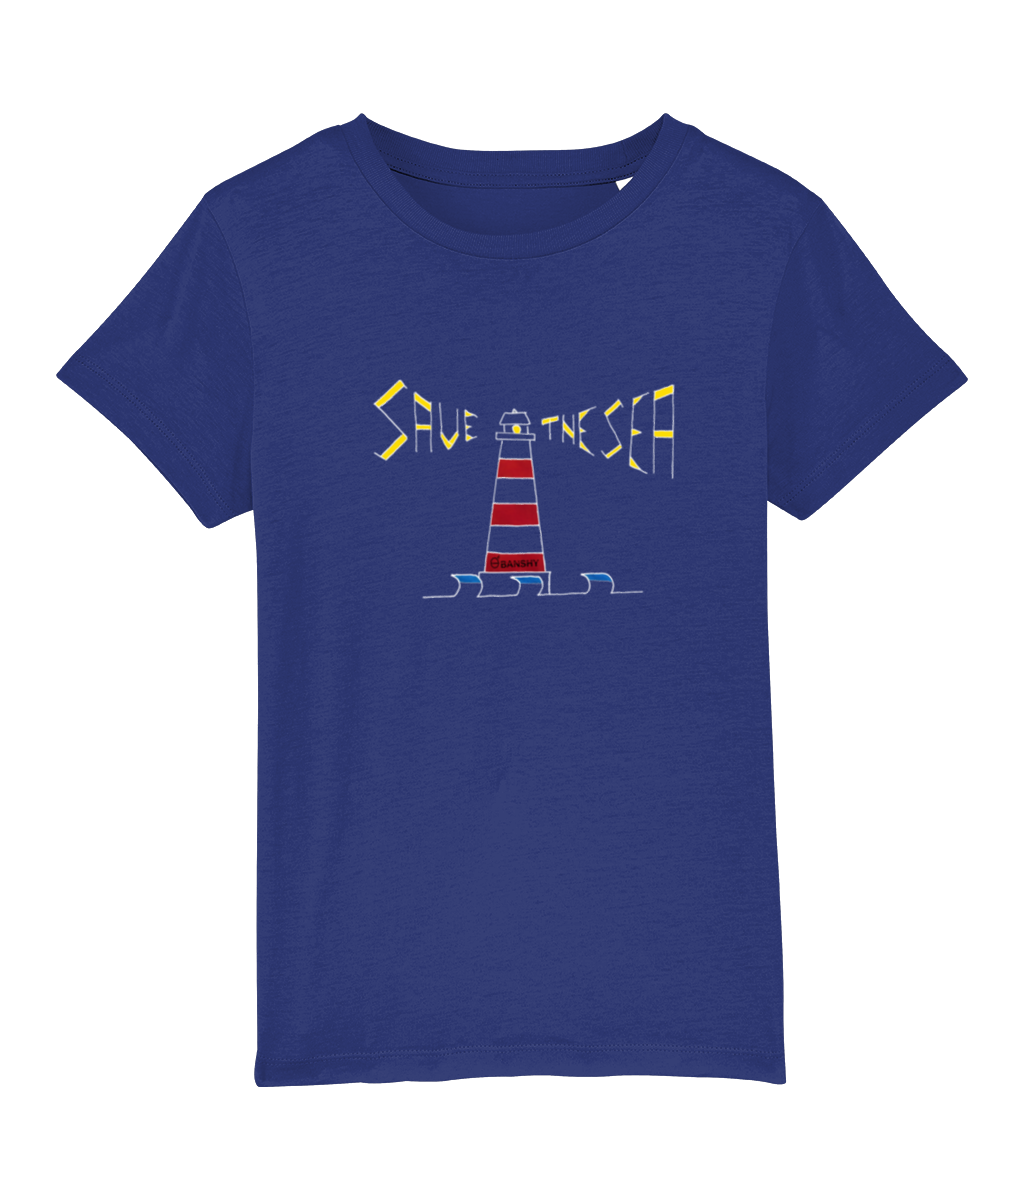 Lighthouse - Clothing - French Navy / XS / 3-4 - 100% cotton - Banshy